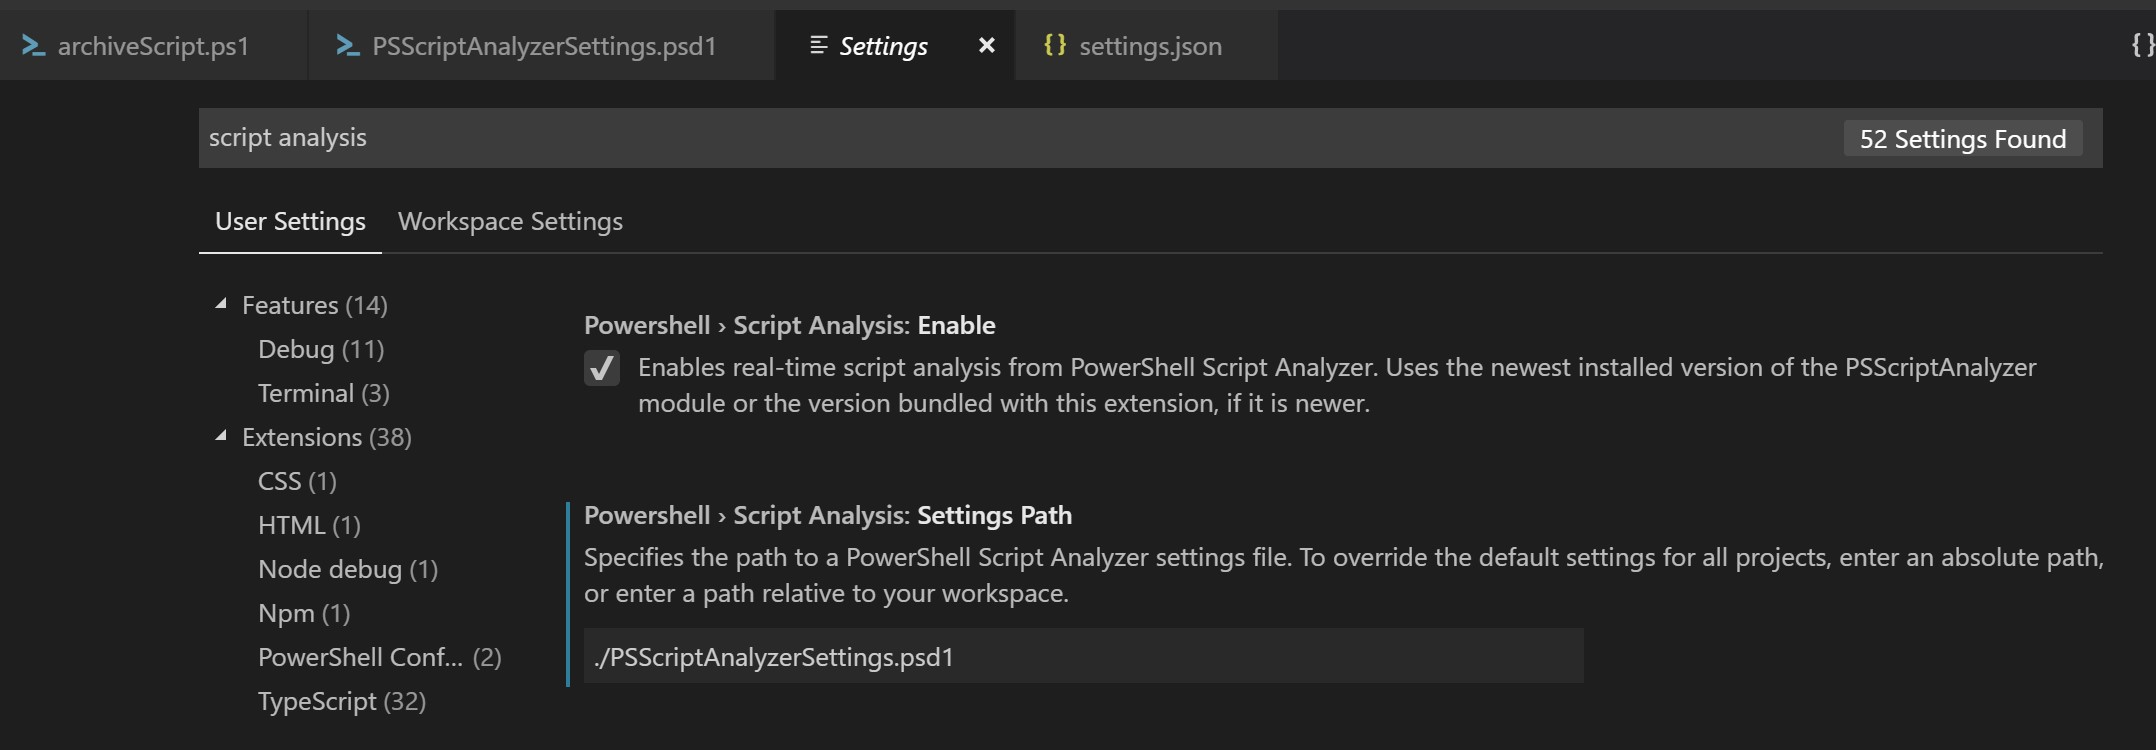 "VSCode settings GUI with PSScriptAnalyzer settings path configured to ""./PSScriptAnalyzerSettings.psd1"""